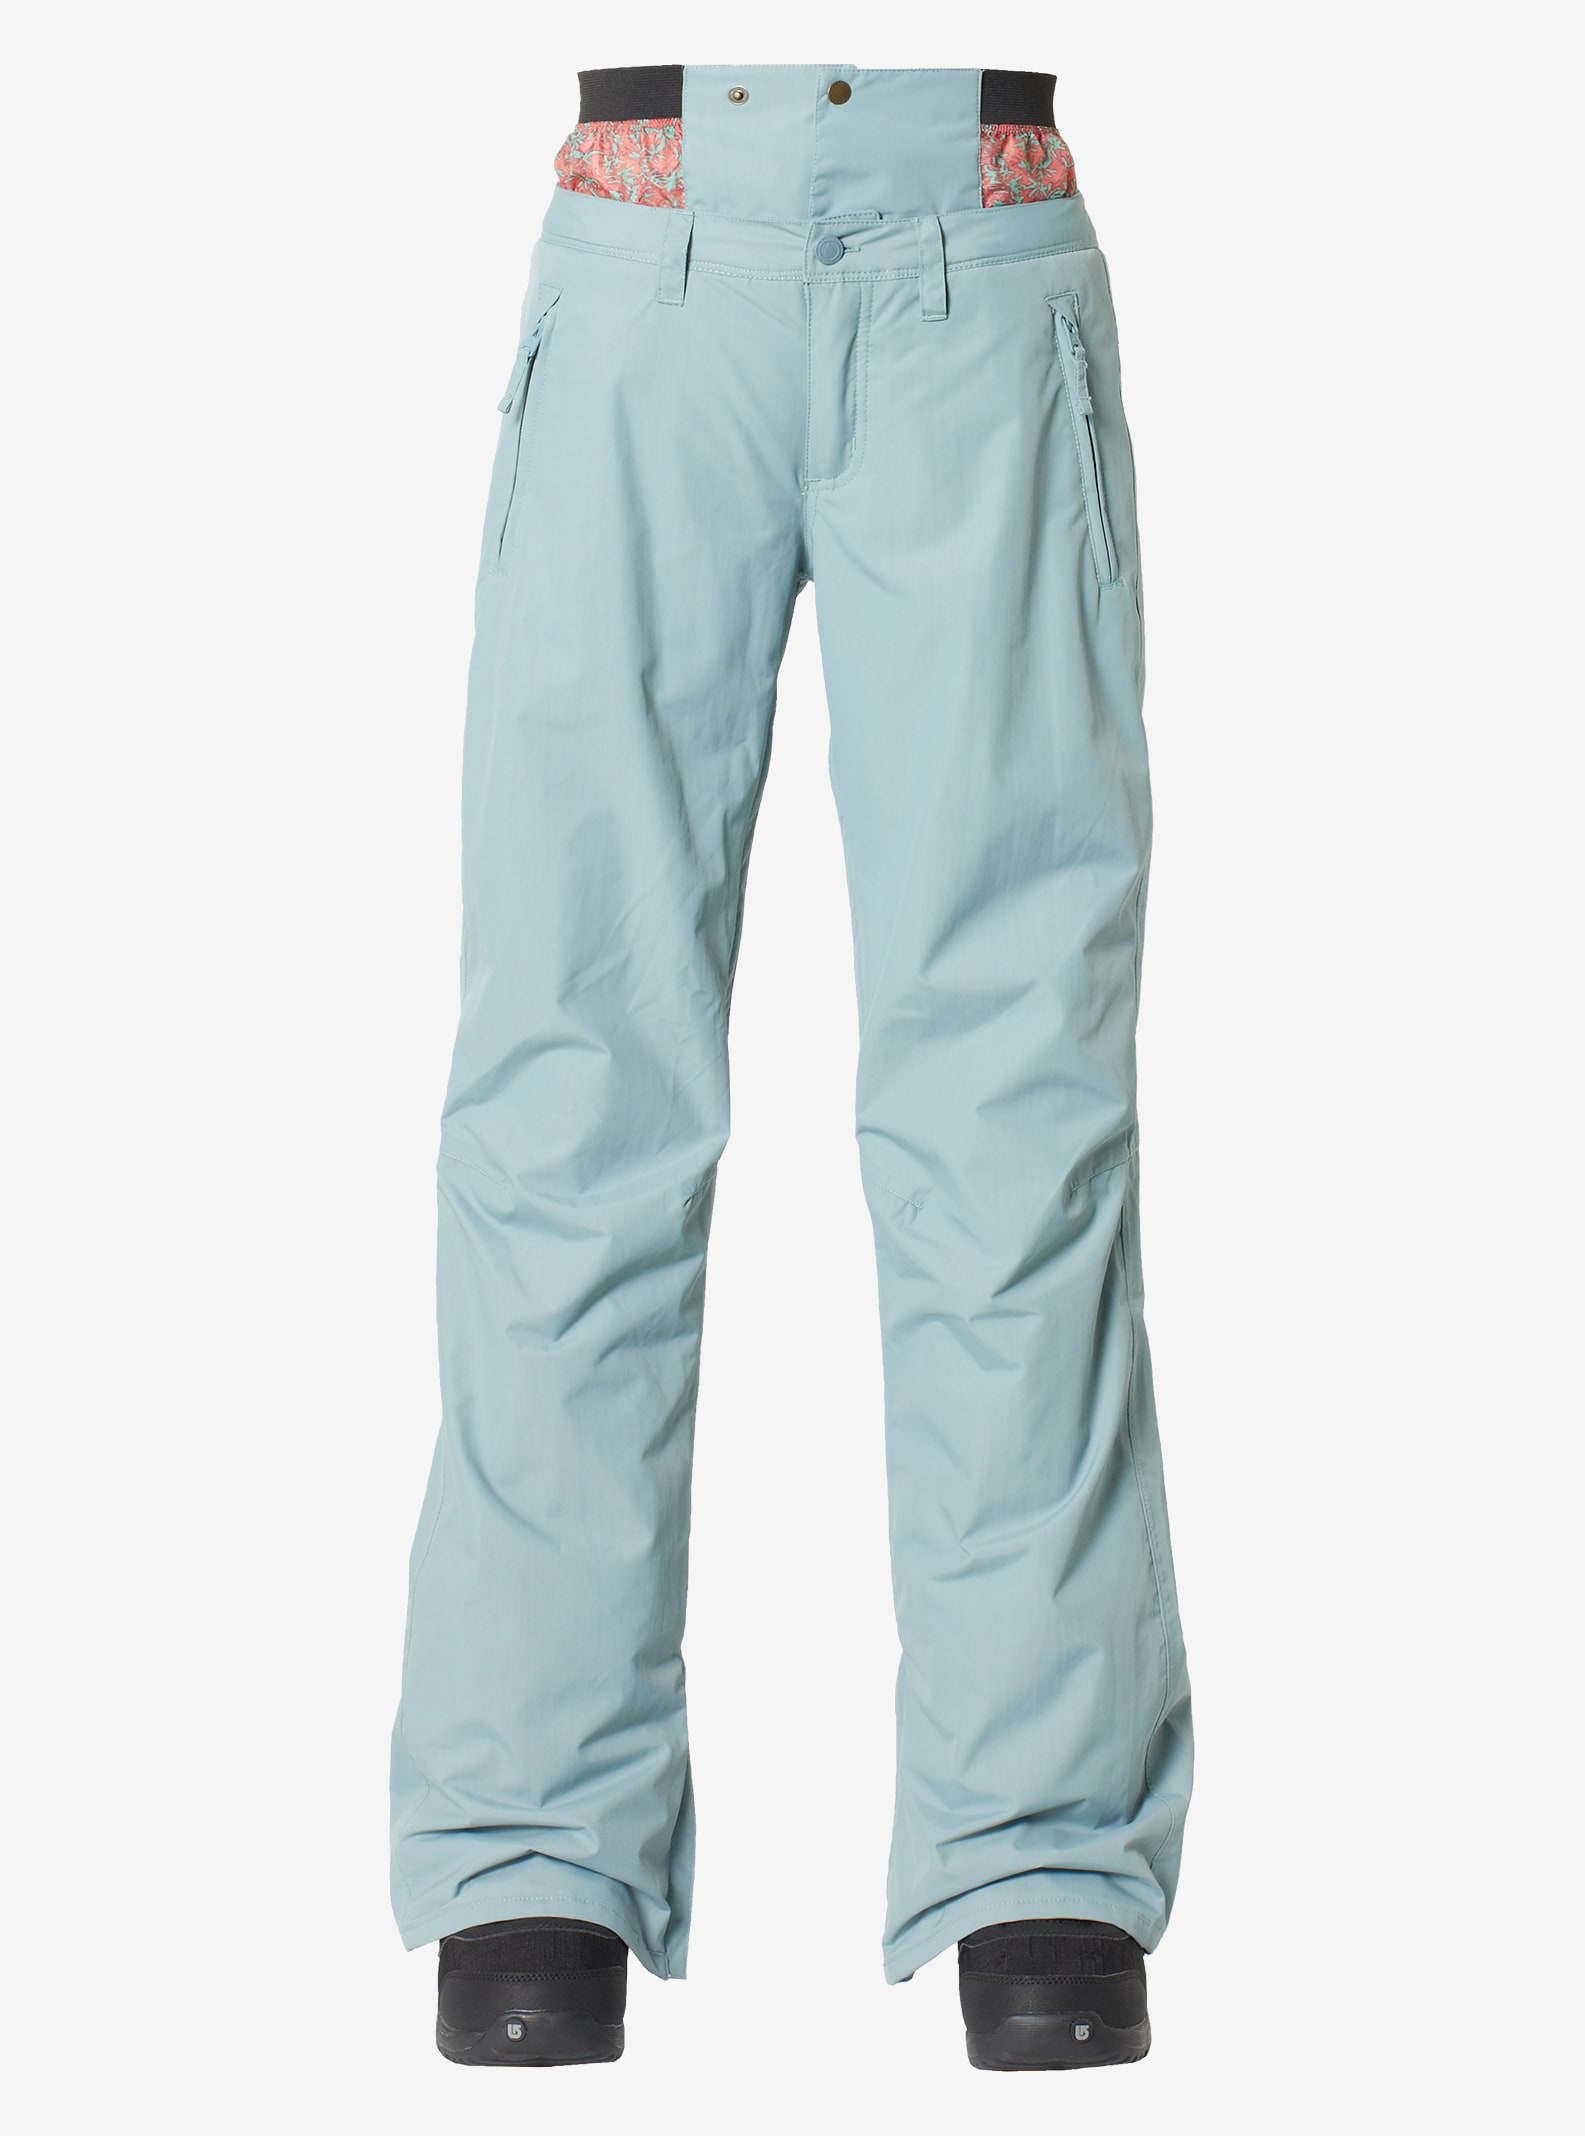 Women's Burton Society Pant shown in Arctic